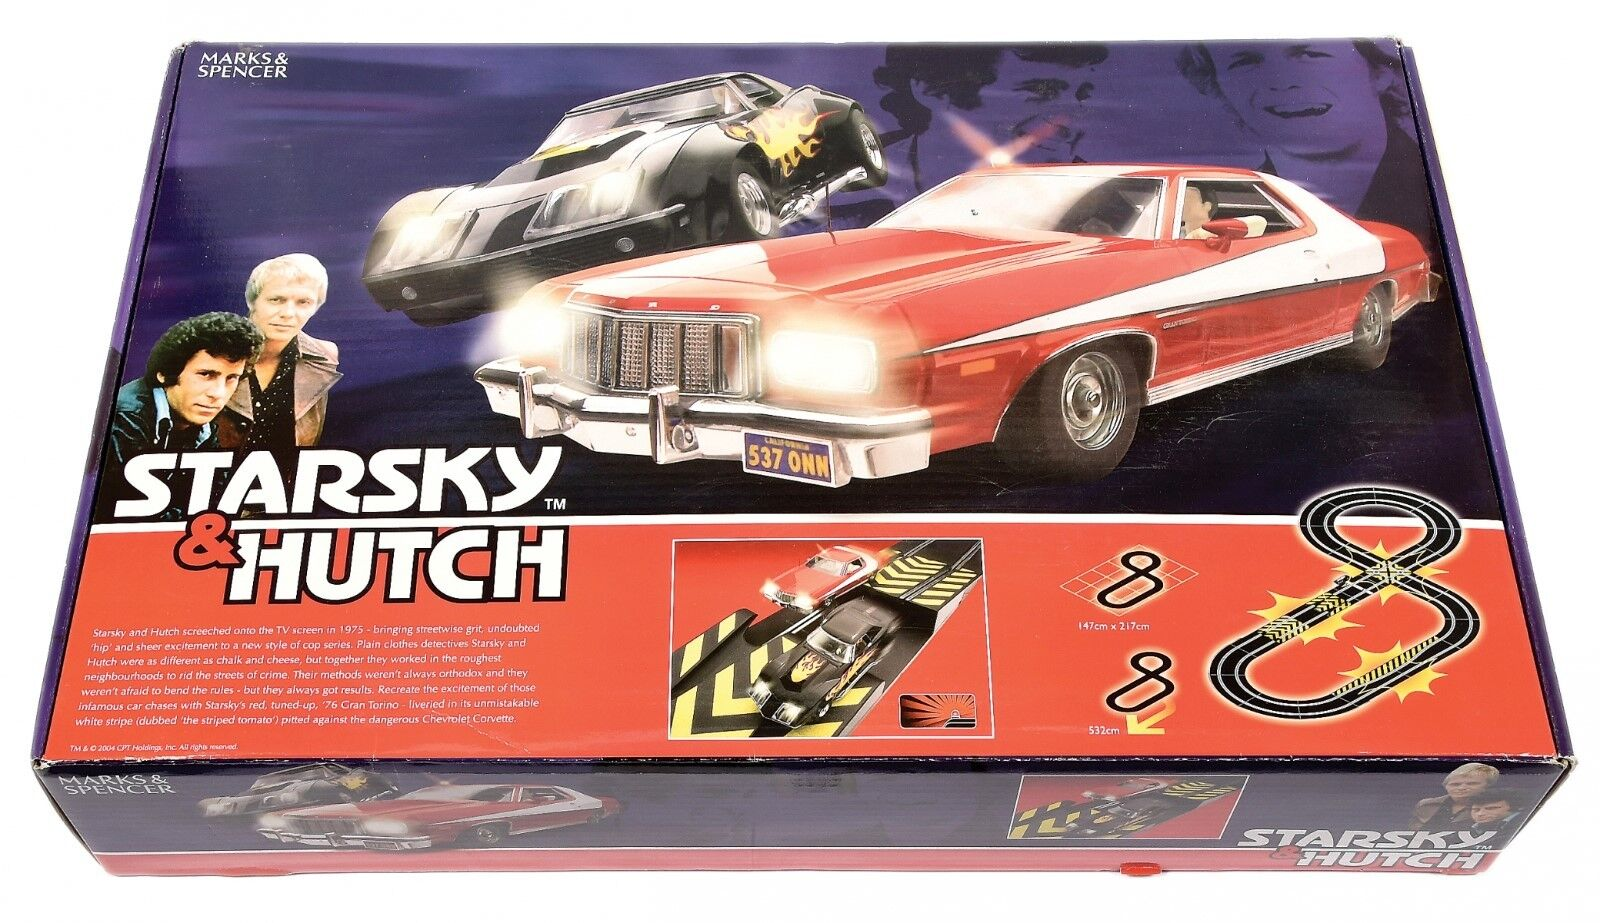 Marks & Spencer Starsky & Hutch slot racing set